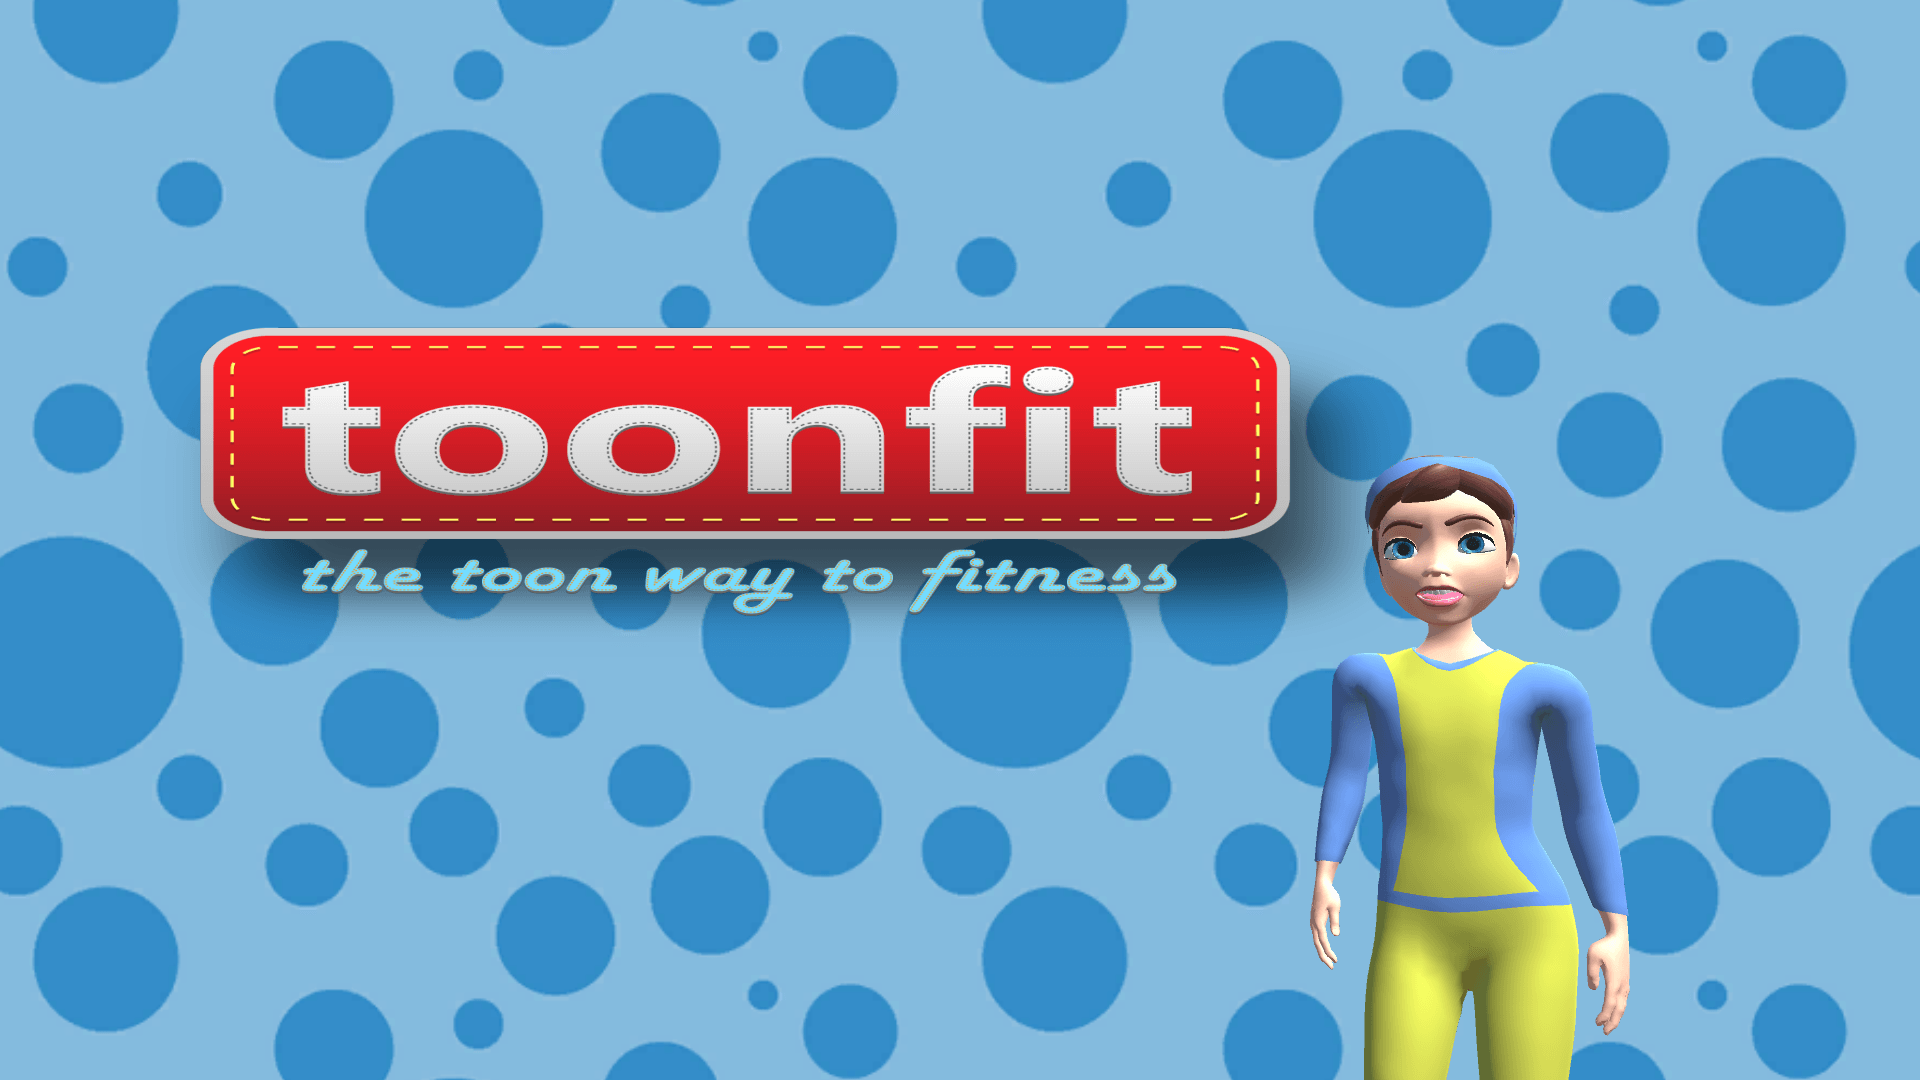 Toonfit is an exergame app for kids. Cute cartoons animated directly from personal trainers using the latest motion capture tech. Cartoons are the best possible way to motivate kids. We want toonfit to become the app that will help kids grow up into adults with healthy lifestyles.